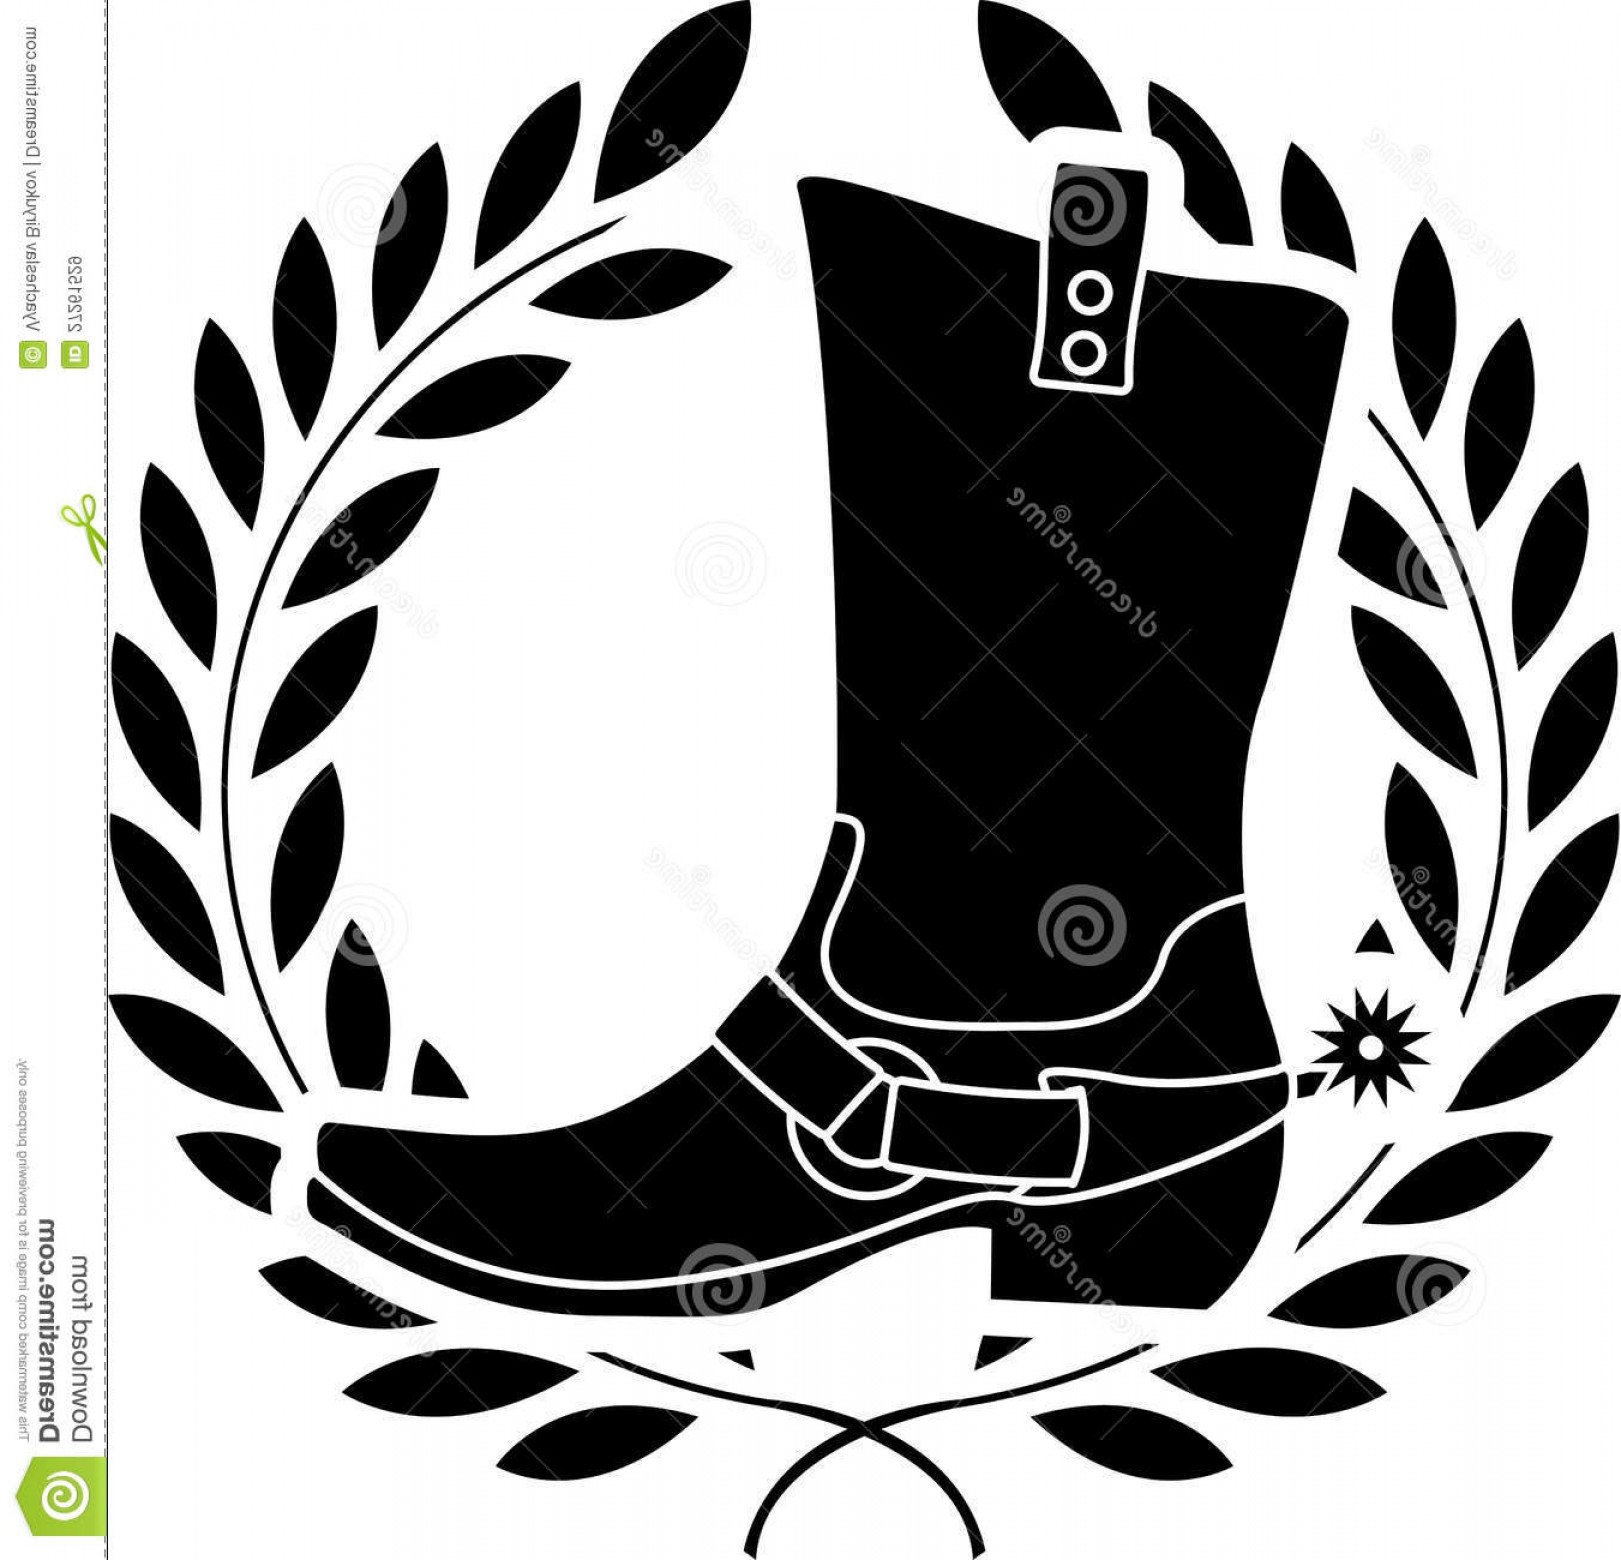 Spurs Clip Art Vector: Royalty Free Stock Images Boot Spurs Image